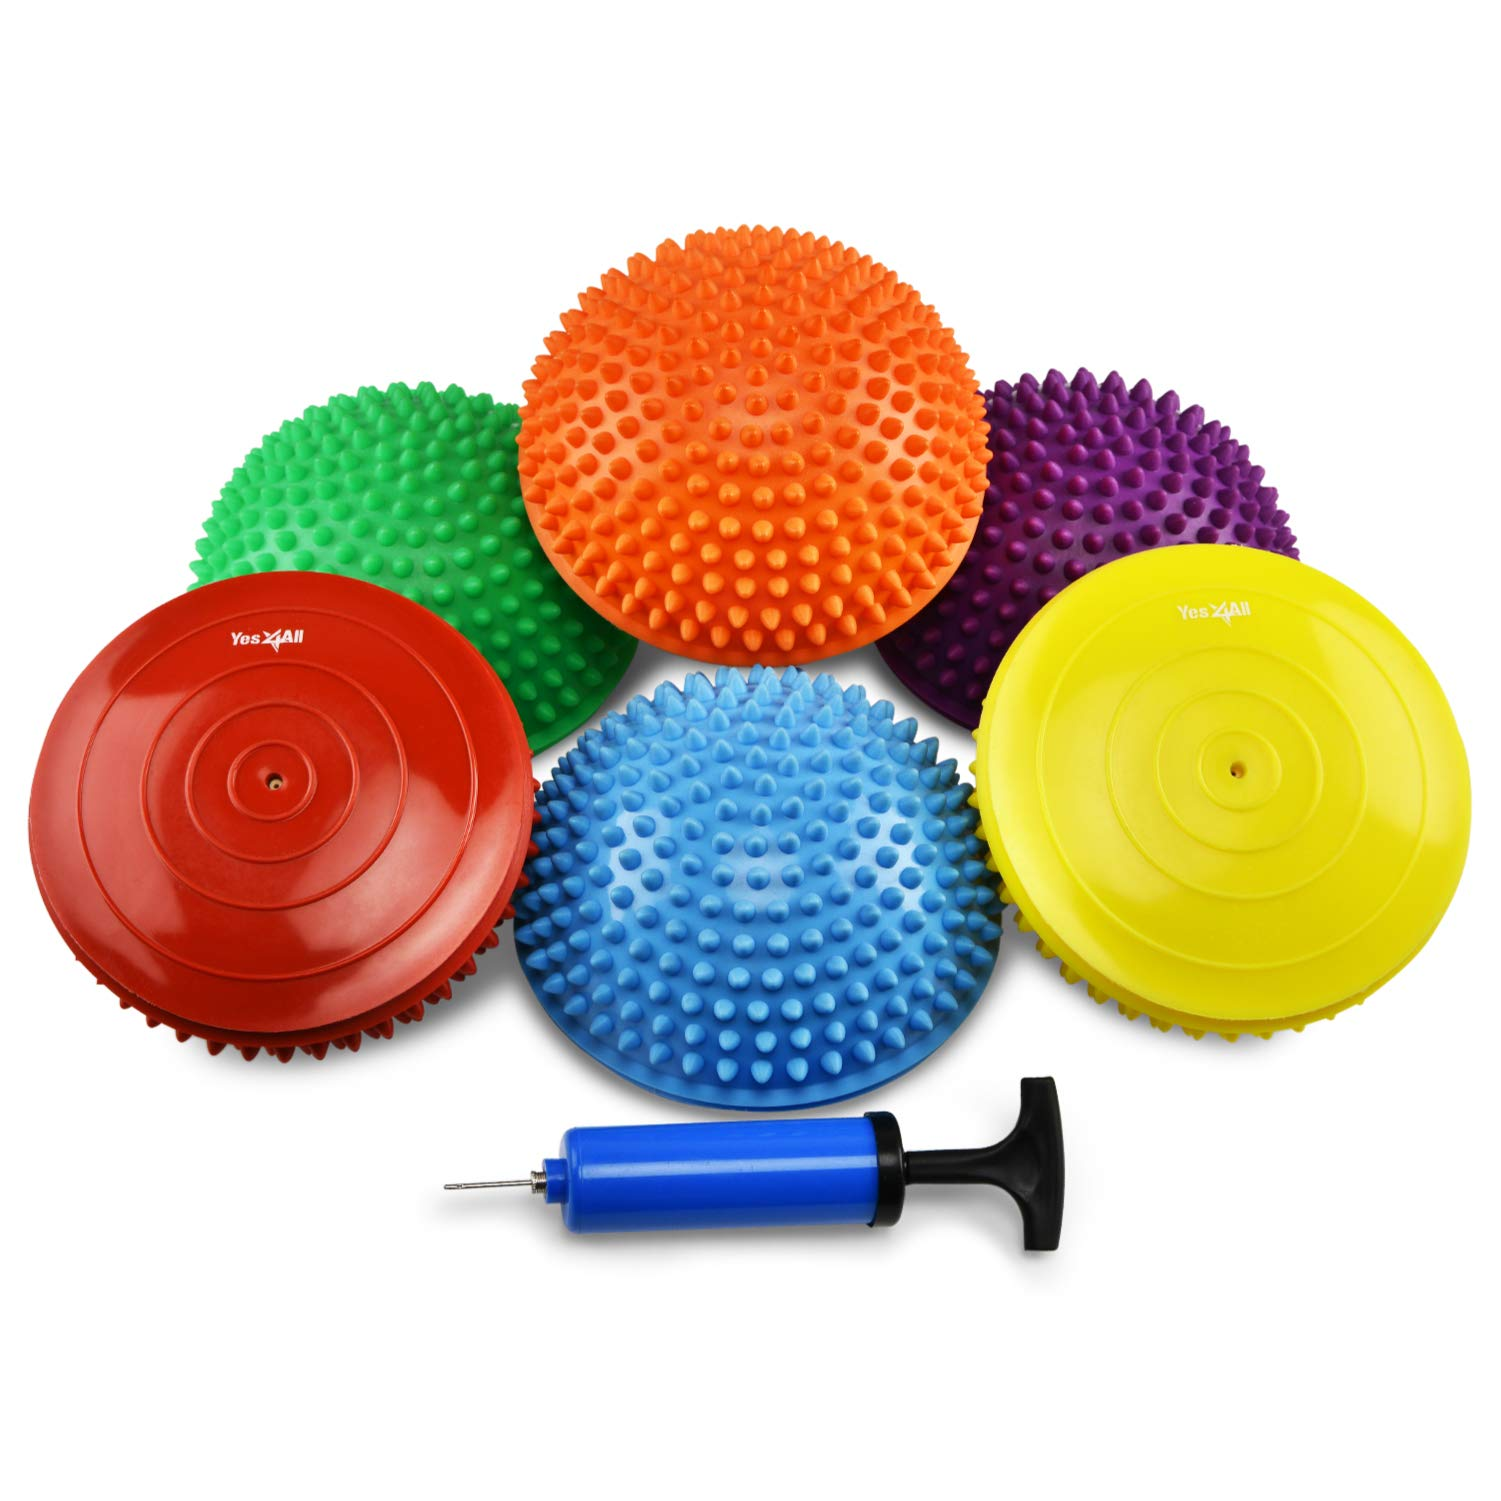 Yes4All Set of 6 Balance pods with 3 New Shapes – Hedgehog, Rocky, Geometric Stability pods, Improve core Strength, Body Awareness, Coordination